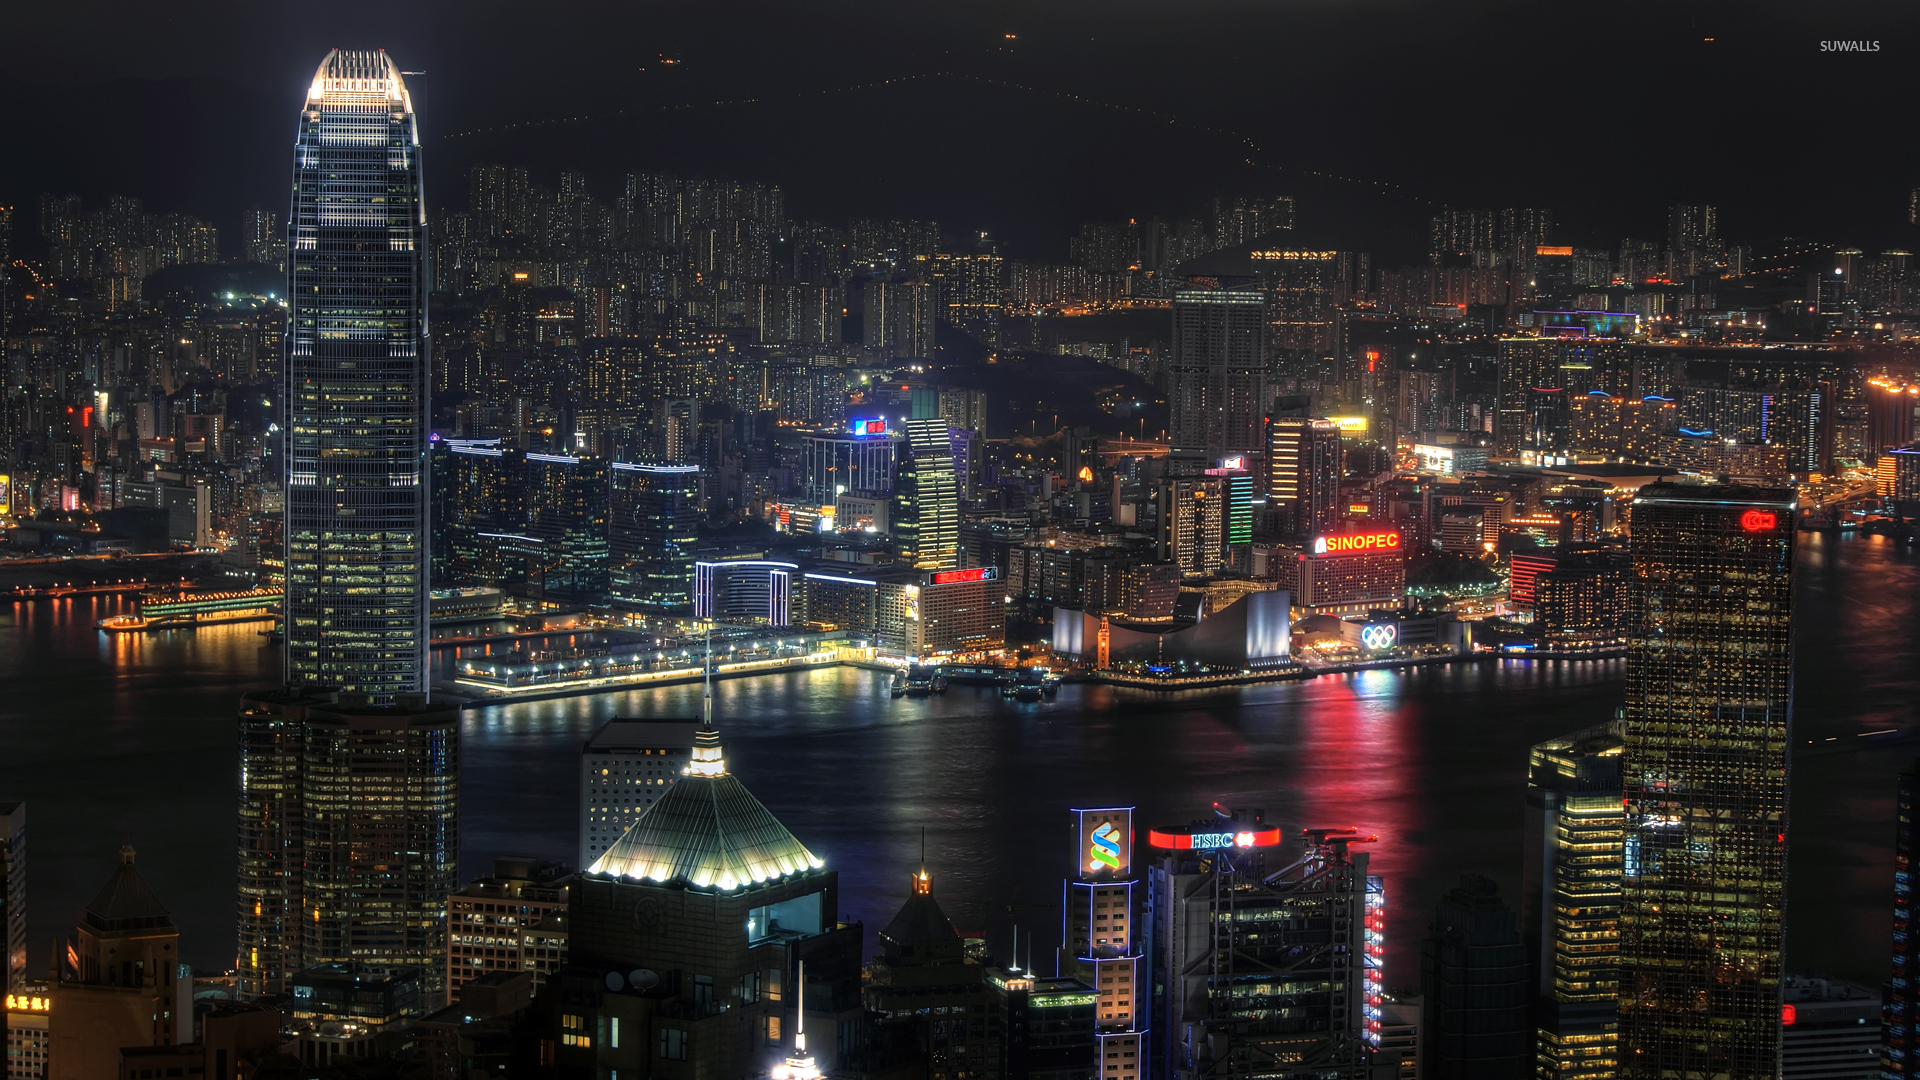 River-In-The-Lighted-City-54103-1920×1080-Wallpaper